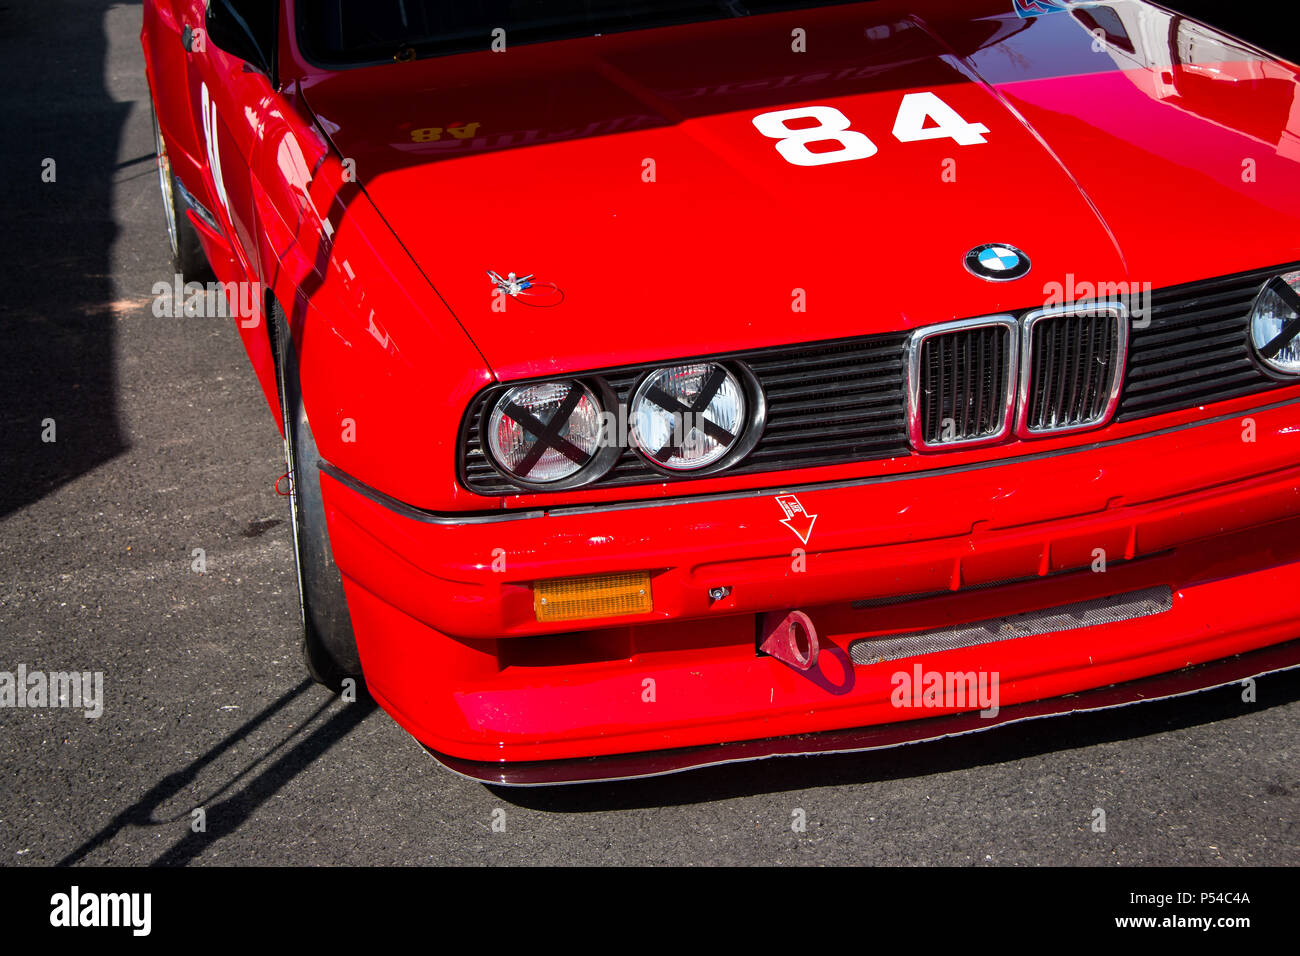 Classic Bmw M3 E30 Racing Car Stock Photo Alamy